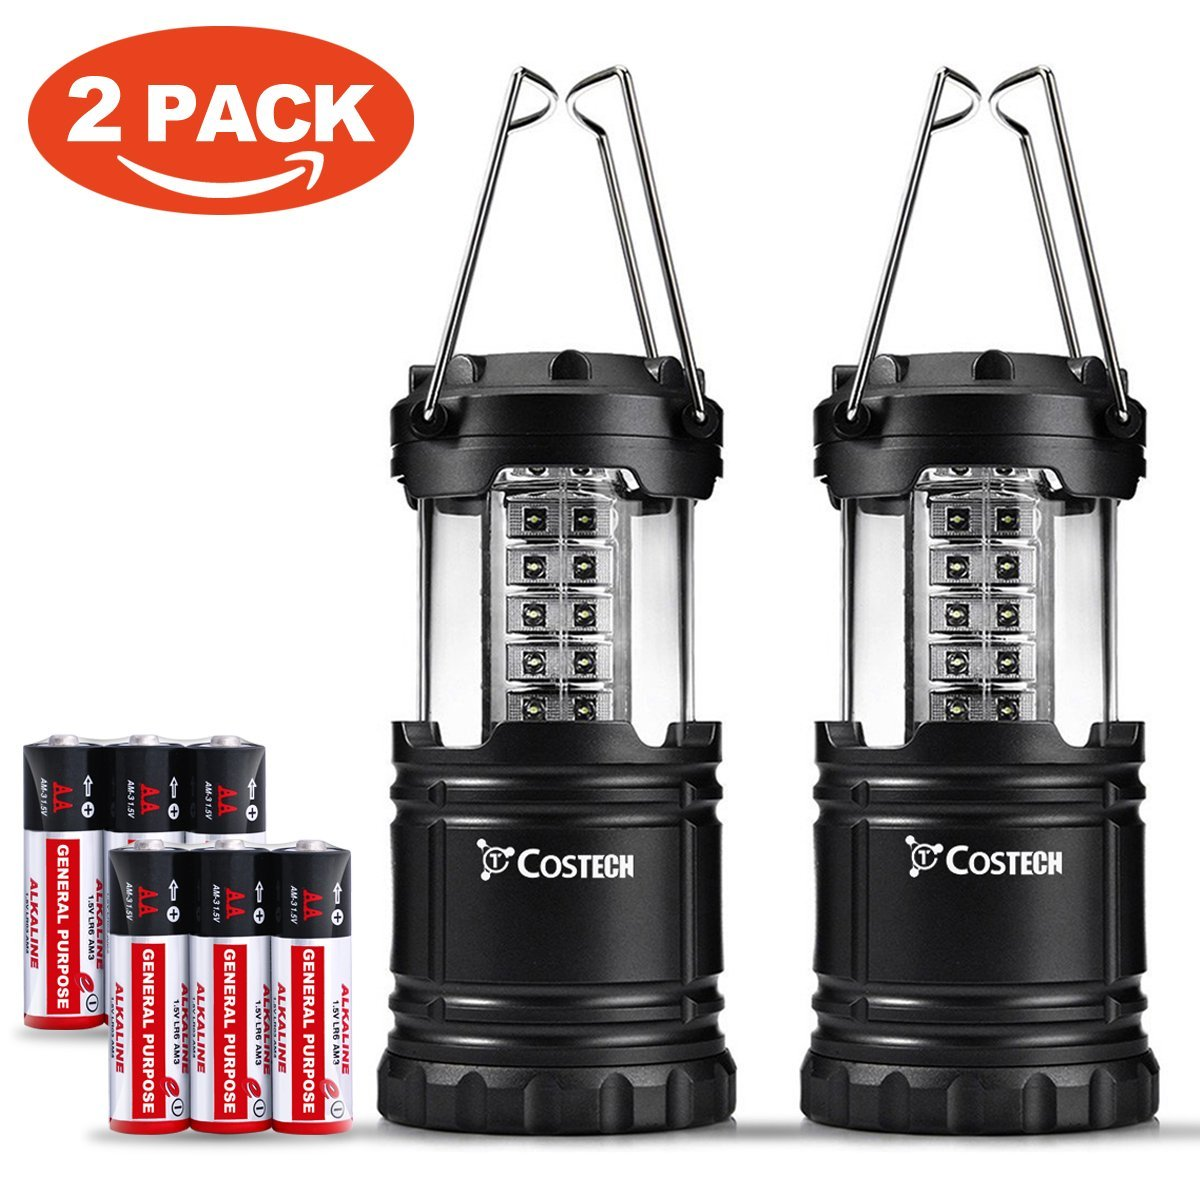 Costech Ultra Bright Camping Lantern, 30 LED Portable Outdoor Lights, Hanging Flashlight Camping Gear Equipment with Batteries, Set of 2